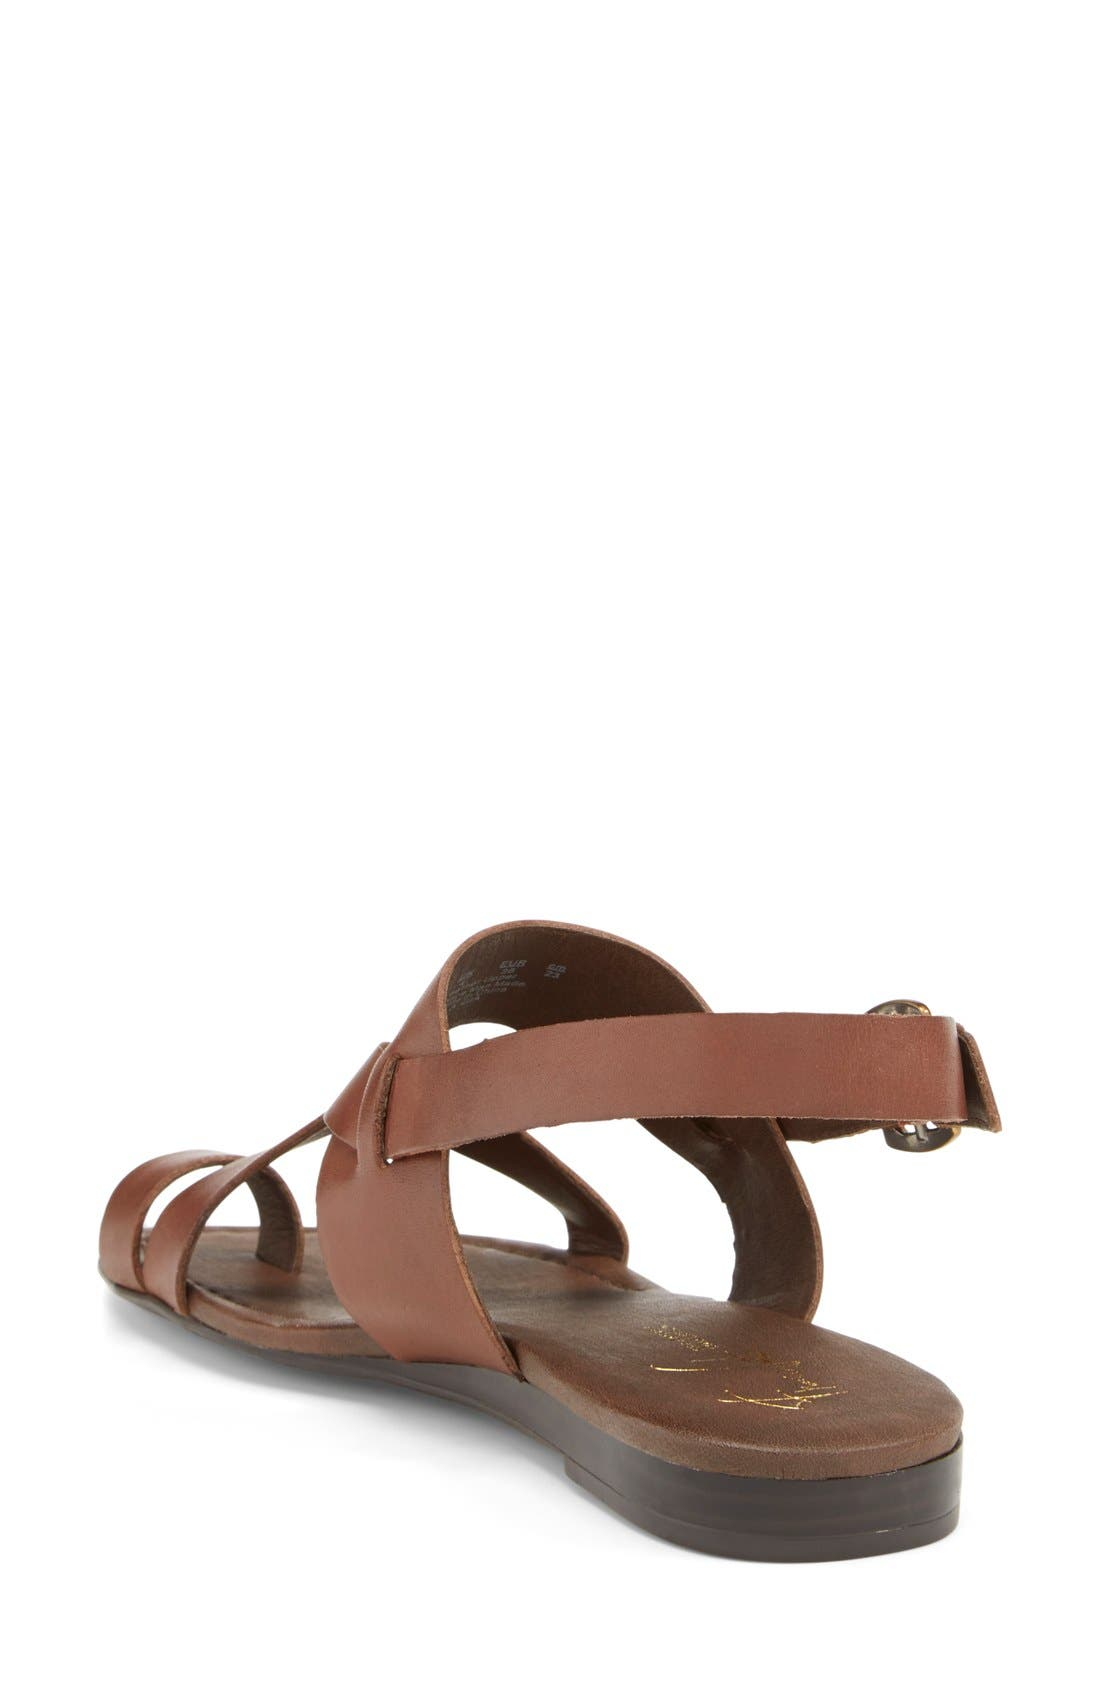 Gia Sandal,                             Alternate thumbnail 2, color,                             Chocolate Antanado